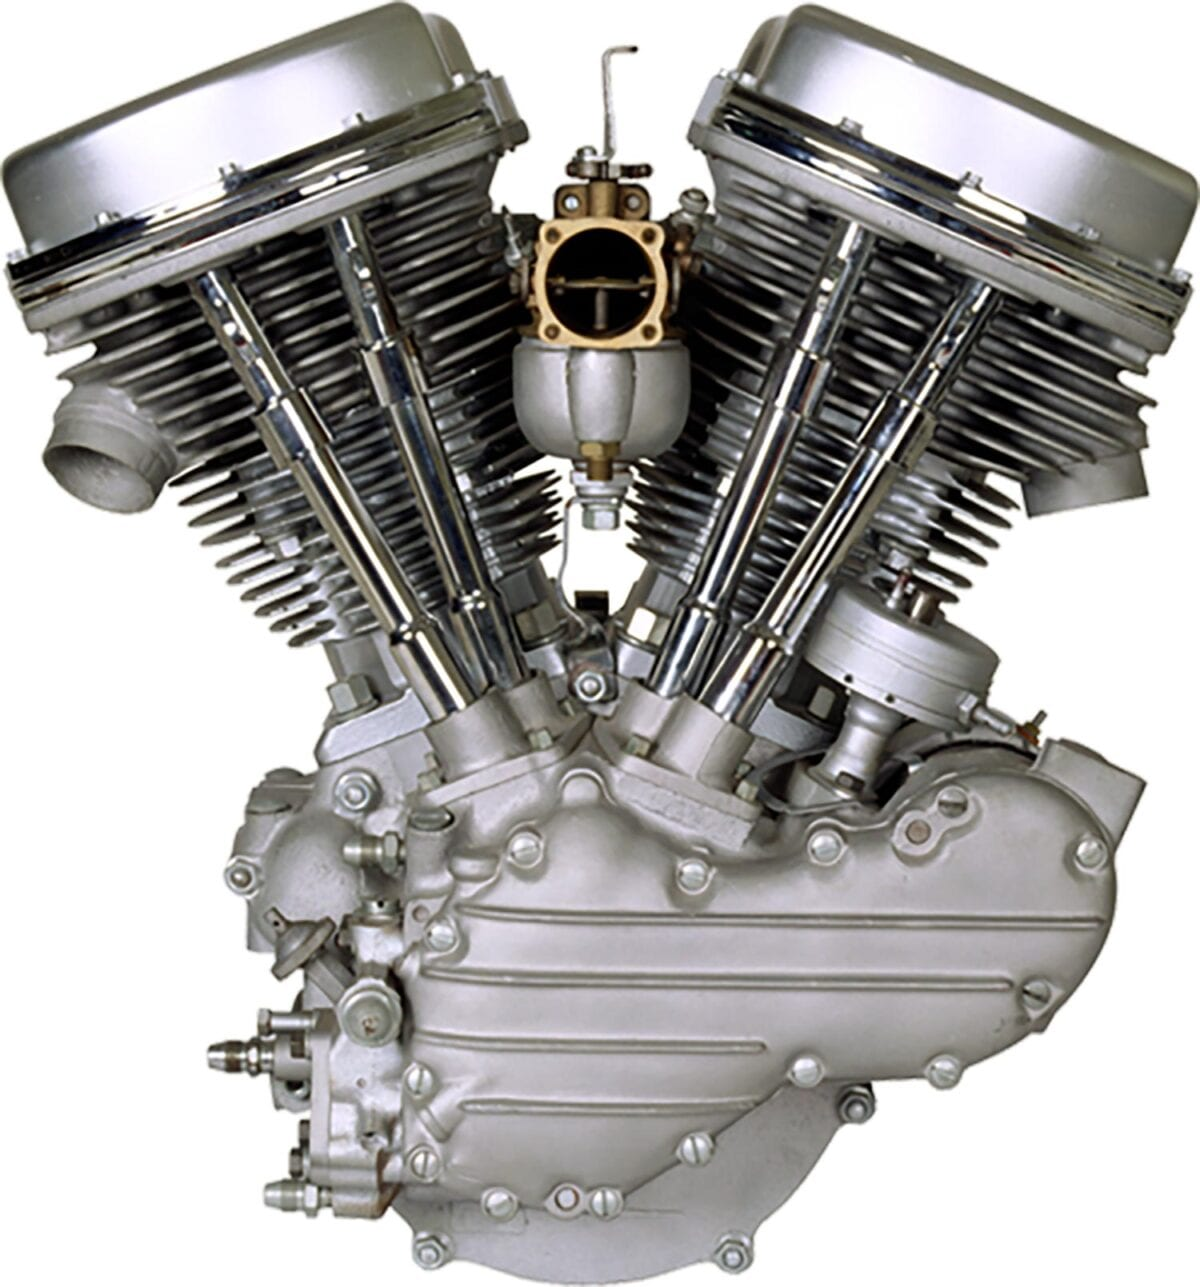 History: Know your Harley-Davidson engine types - Motorcycle